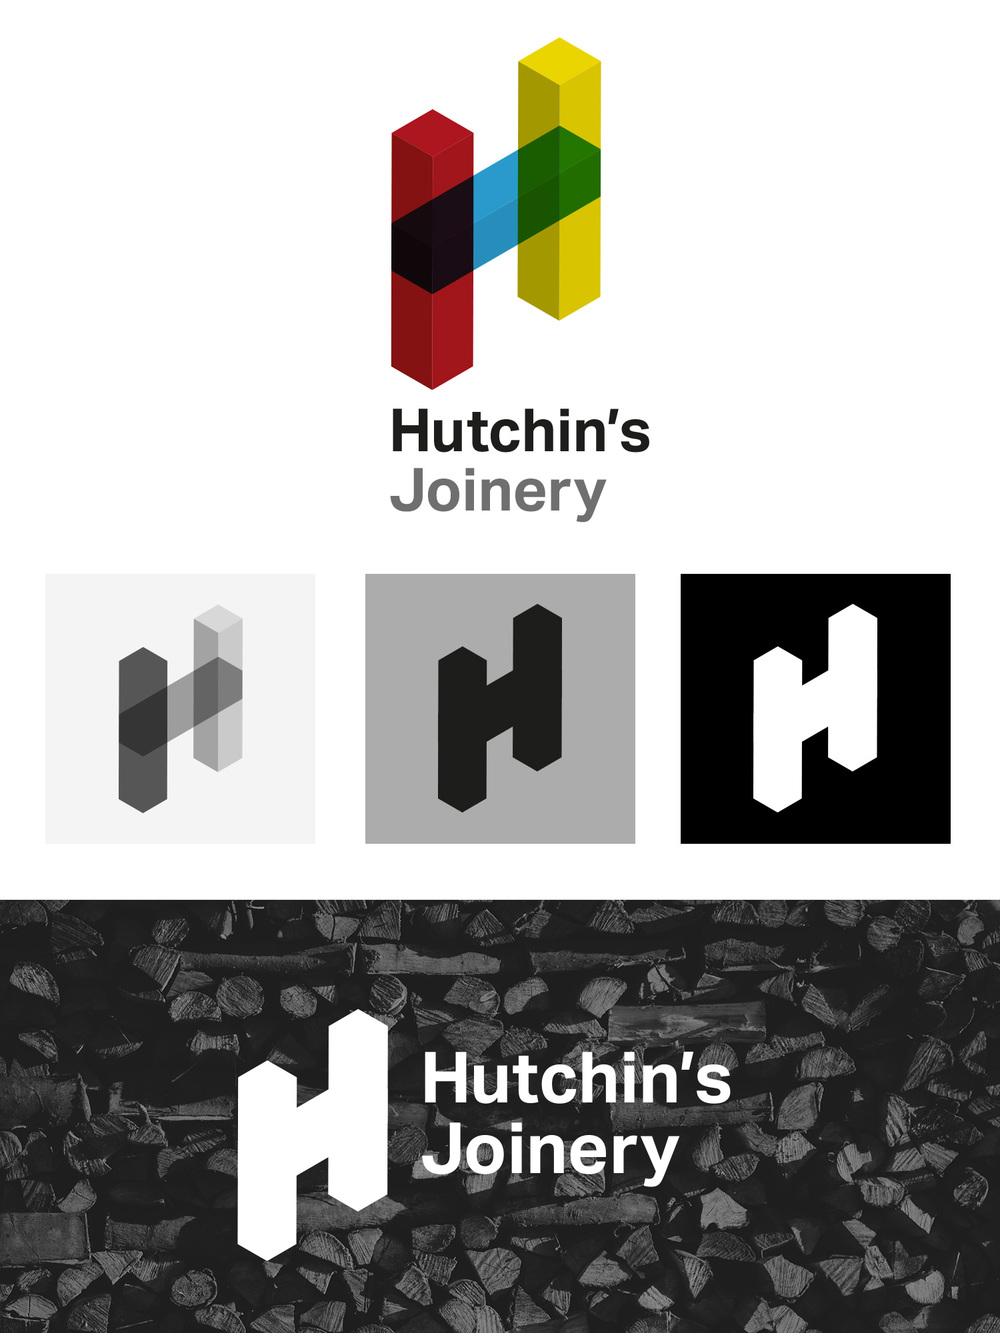 Hutchin's Joinery logo applications